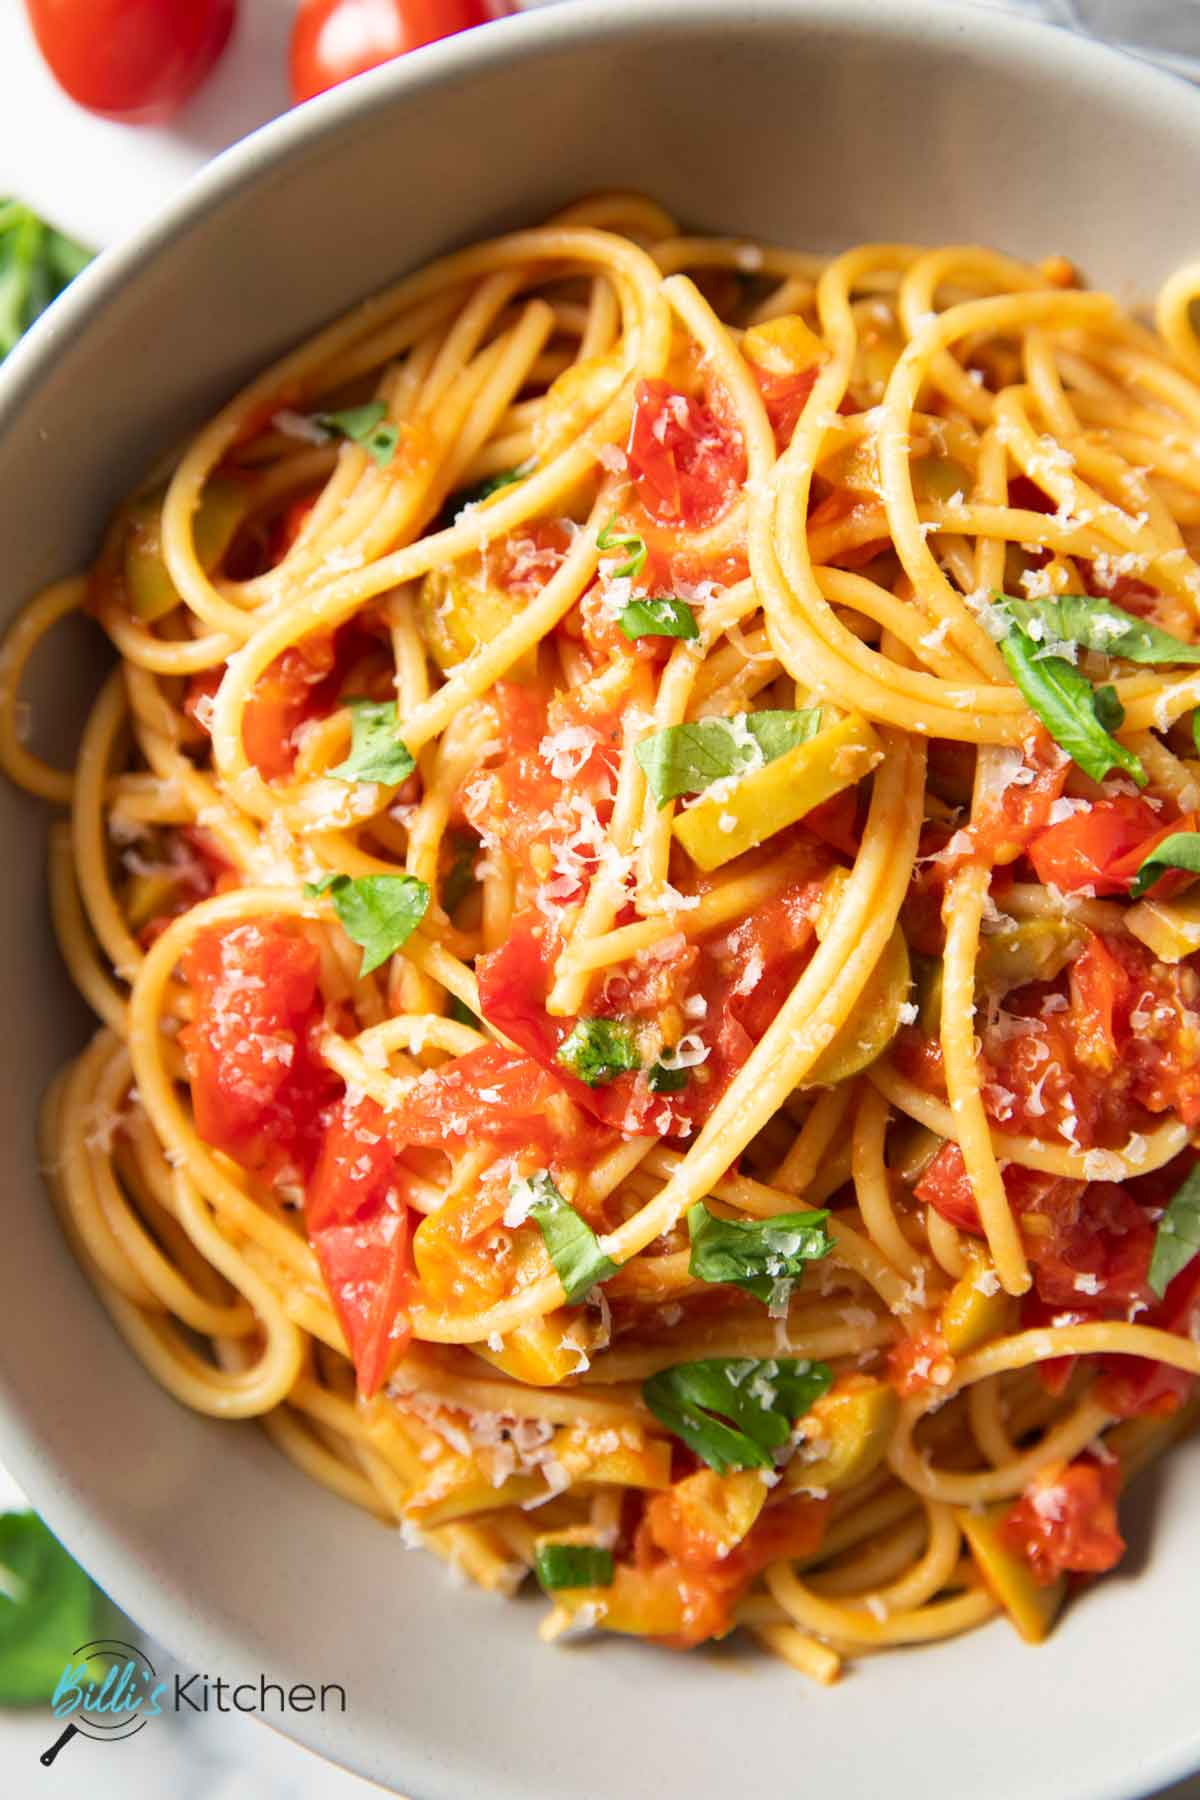 A closer shot of a plate of cherry tomato pasta, highlighting the texture of the dish.